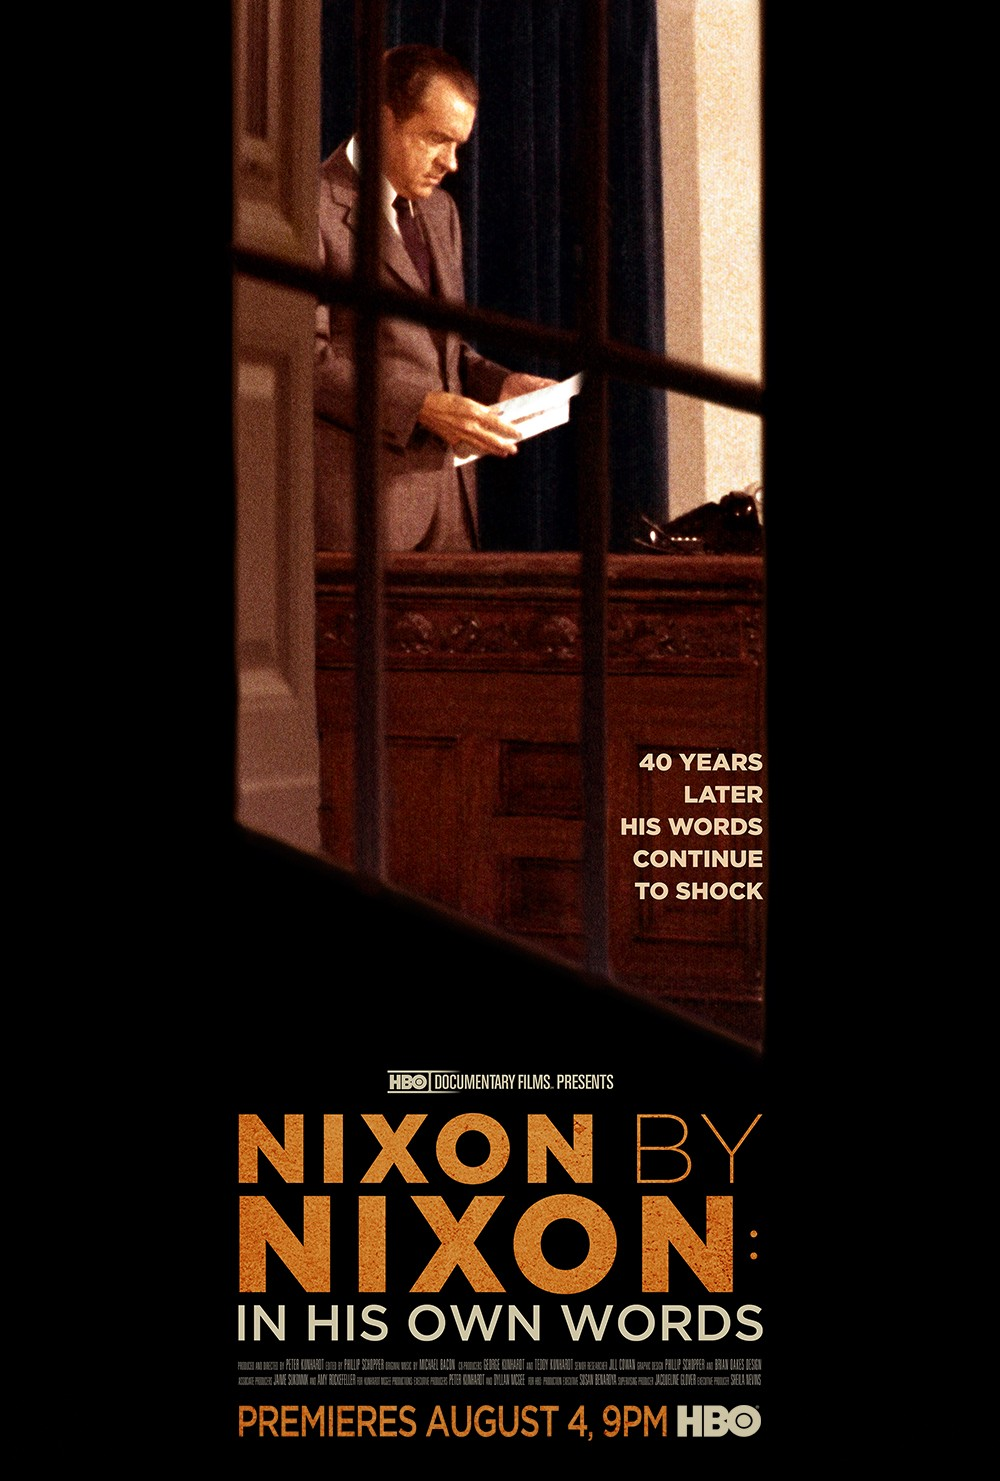 nixon_by_nixon_in_his_own_words_xlg.jpg